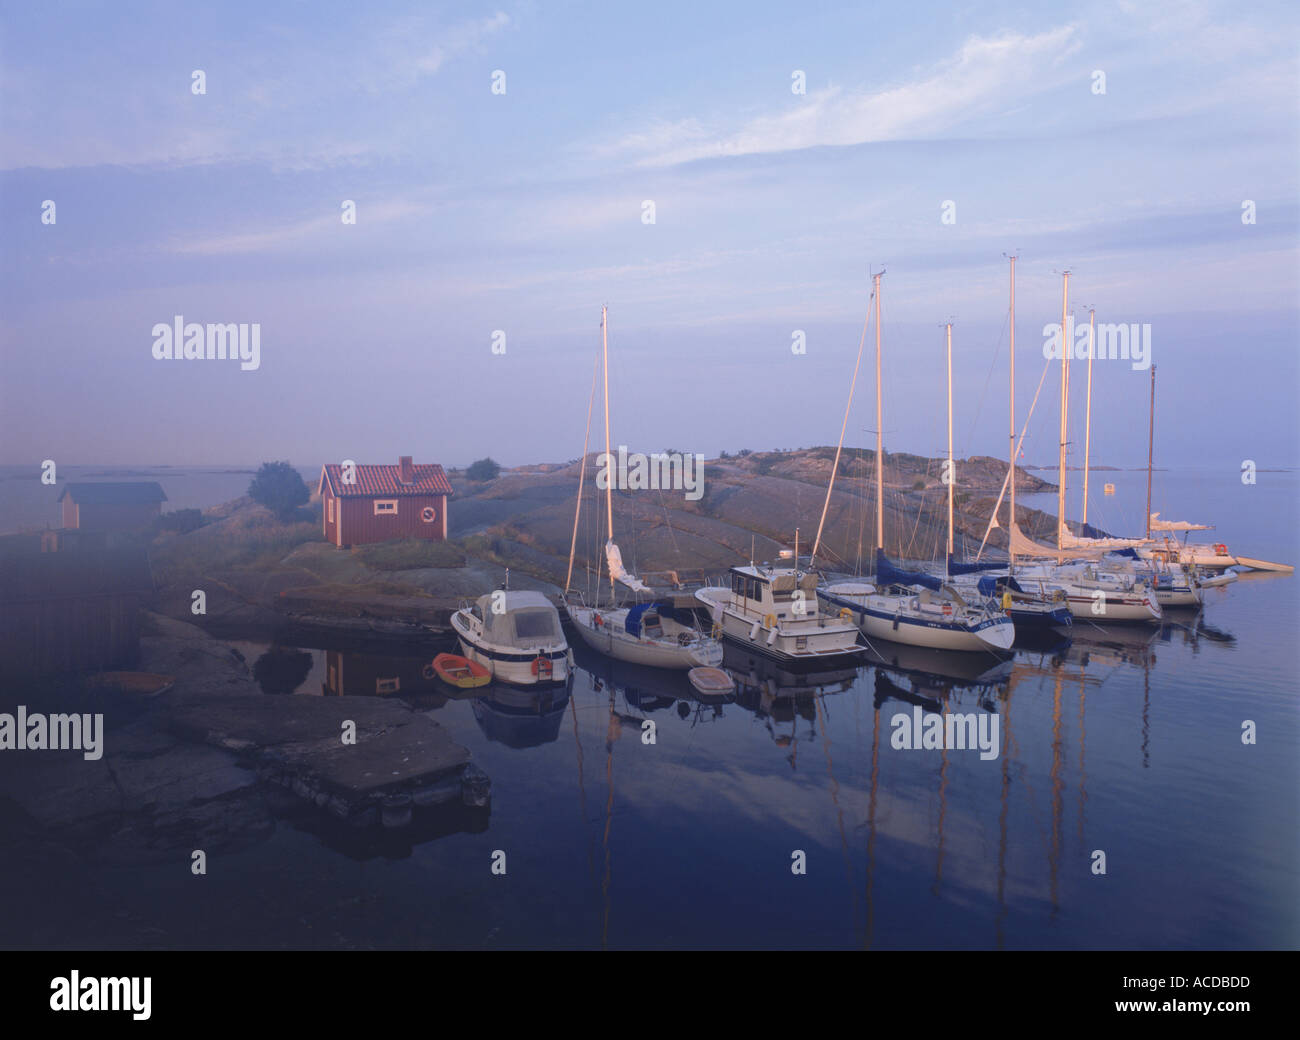 Sailboats anchored at dawn in Stora Nassa island group of Stockholm Archipelago far out into the Baltic Sea - Stock Image